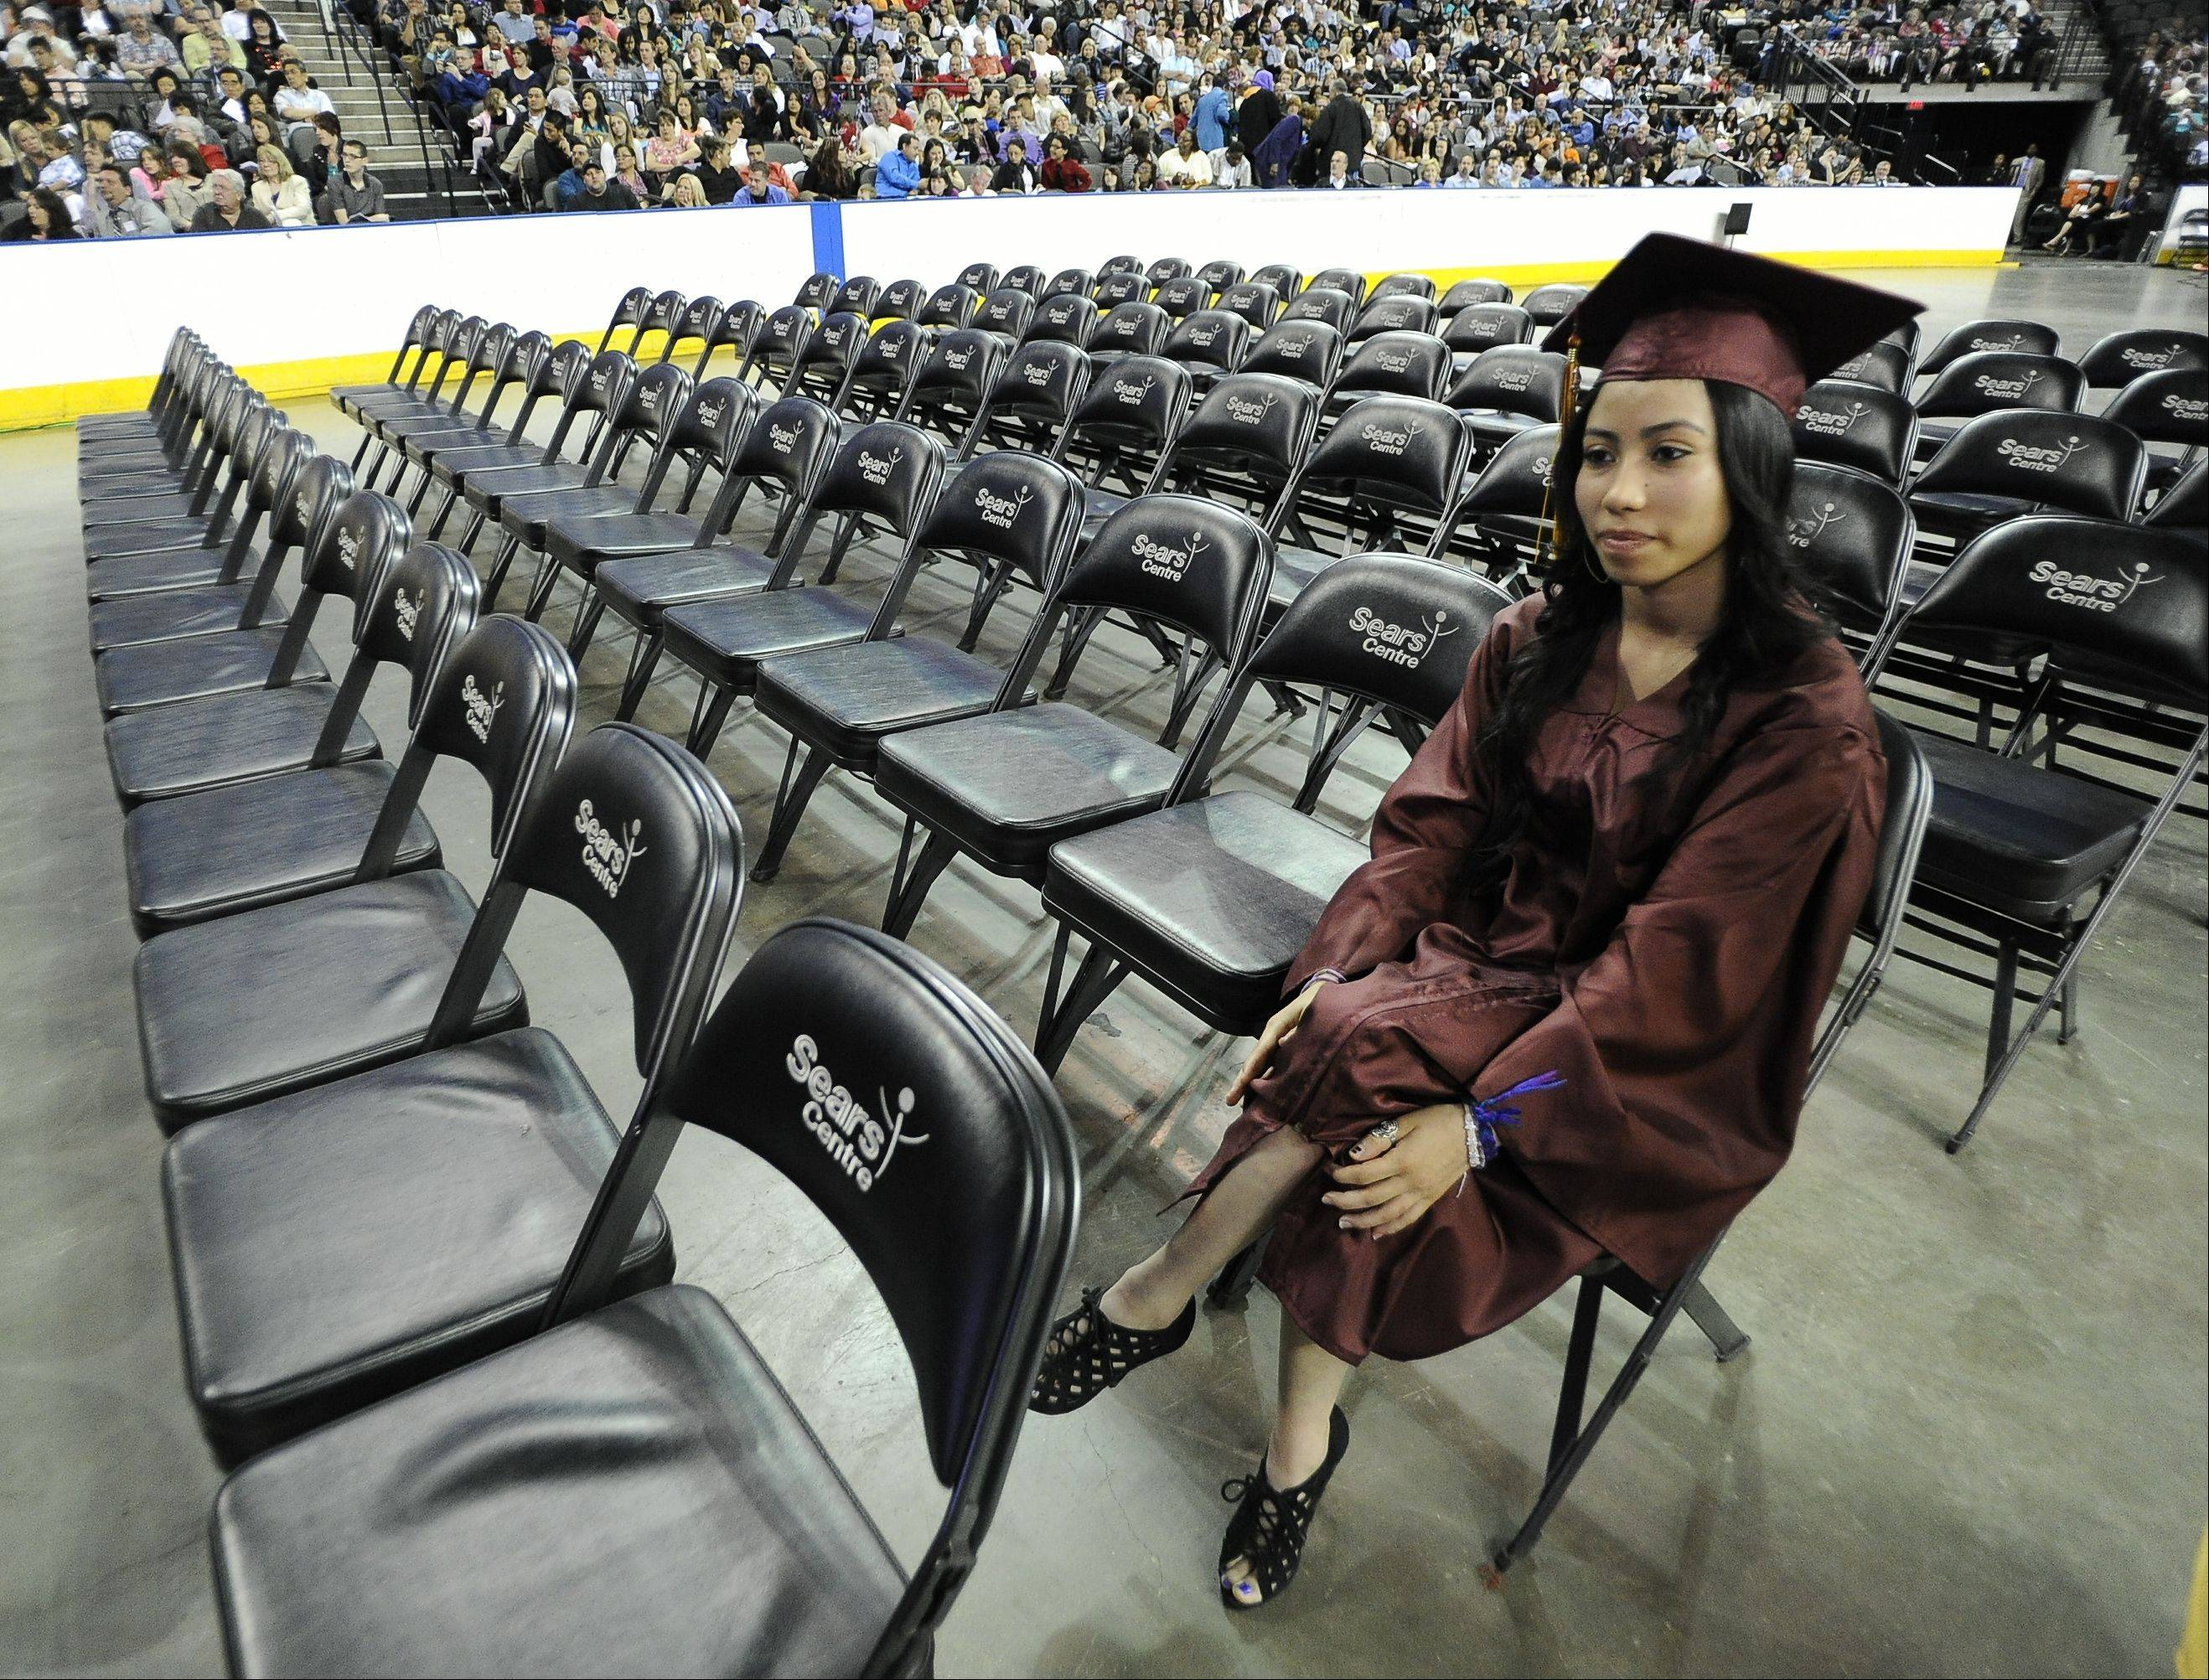 Images from the Schaumburg High School graduation on Sunday, June 2, at the Sears Centre in Hoffman Estates